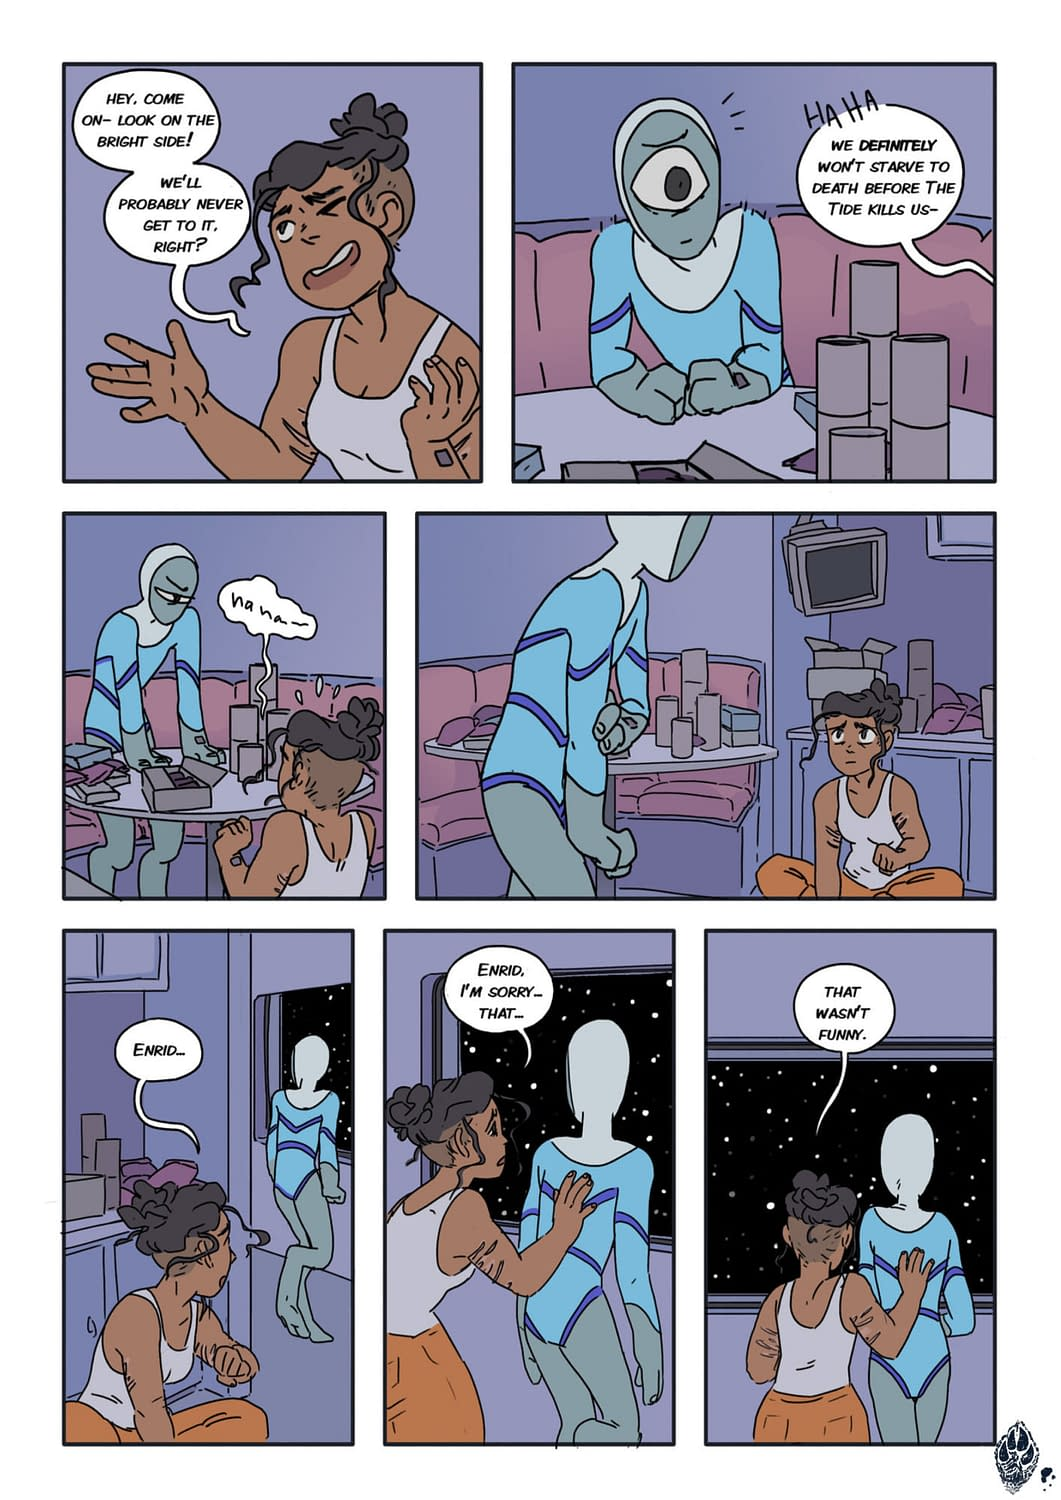 19 Pages From BUN&TEA, the Serial Comics Magazine Now on Kickstarter [Preview]